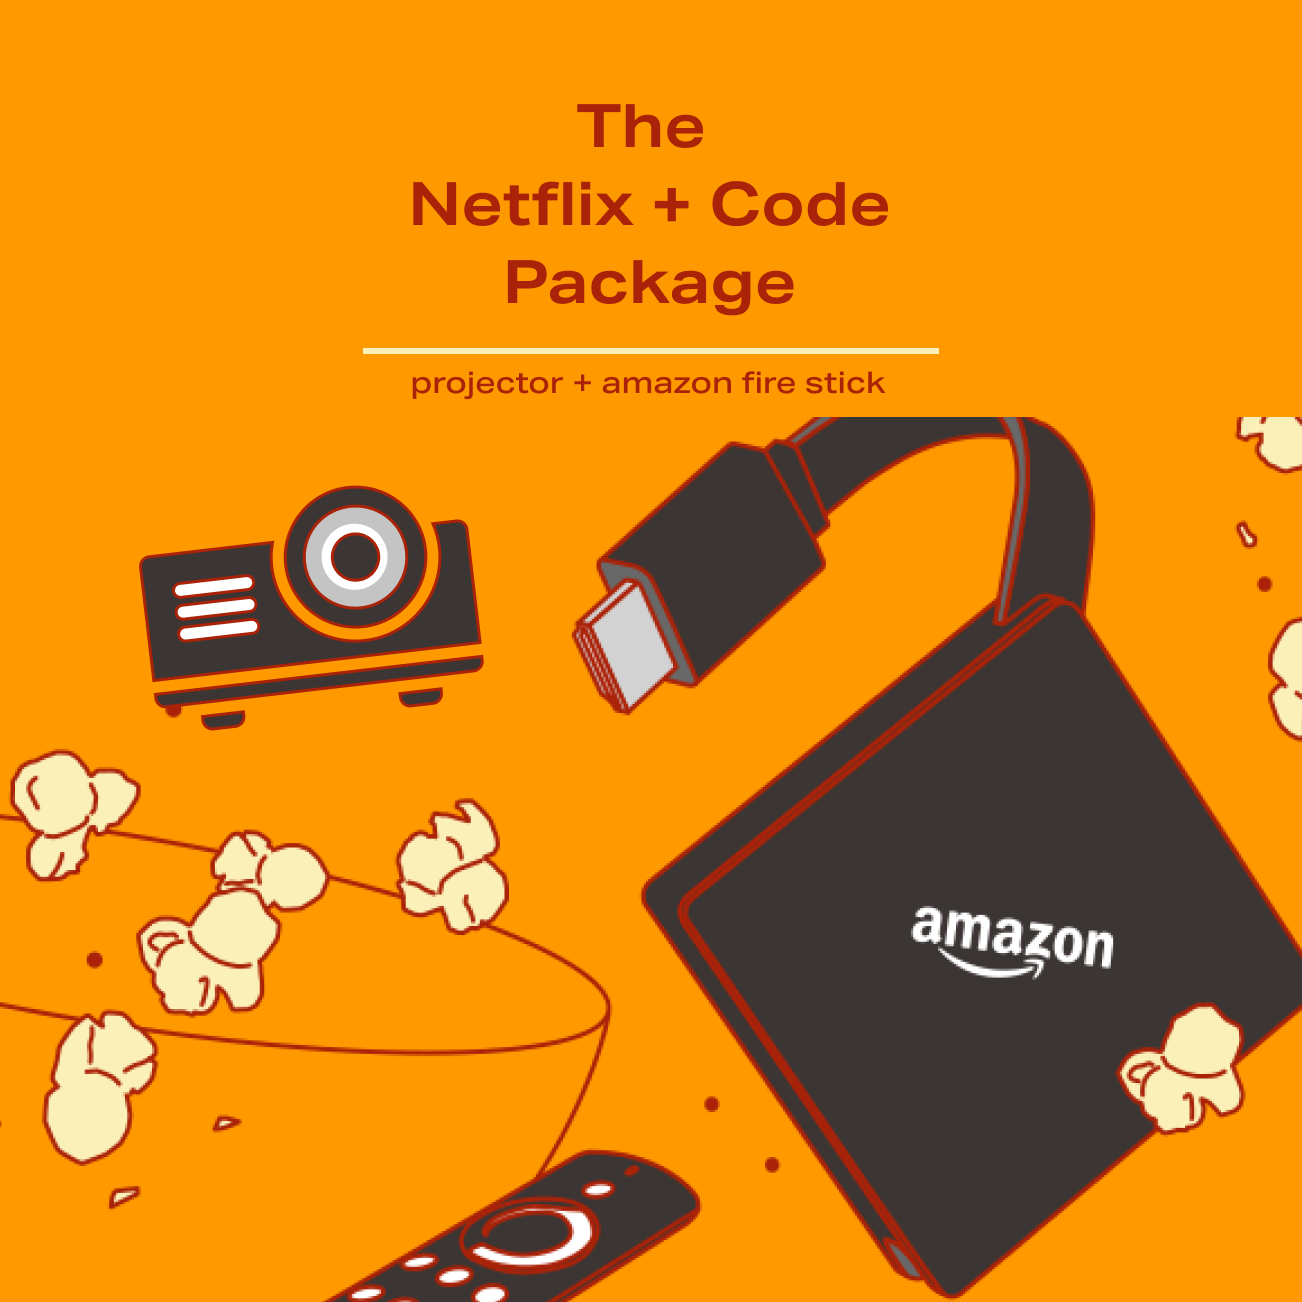 The Netflix and Code Package - projector and amazon firestick